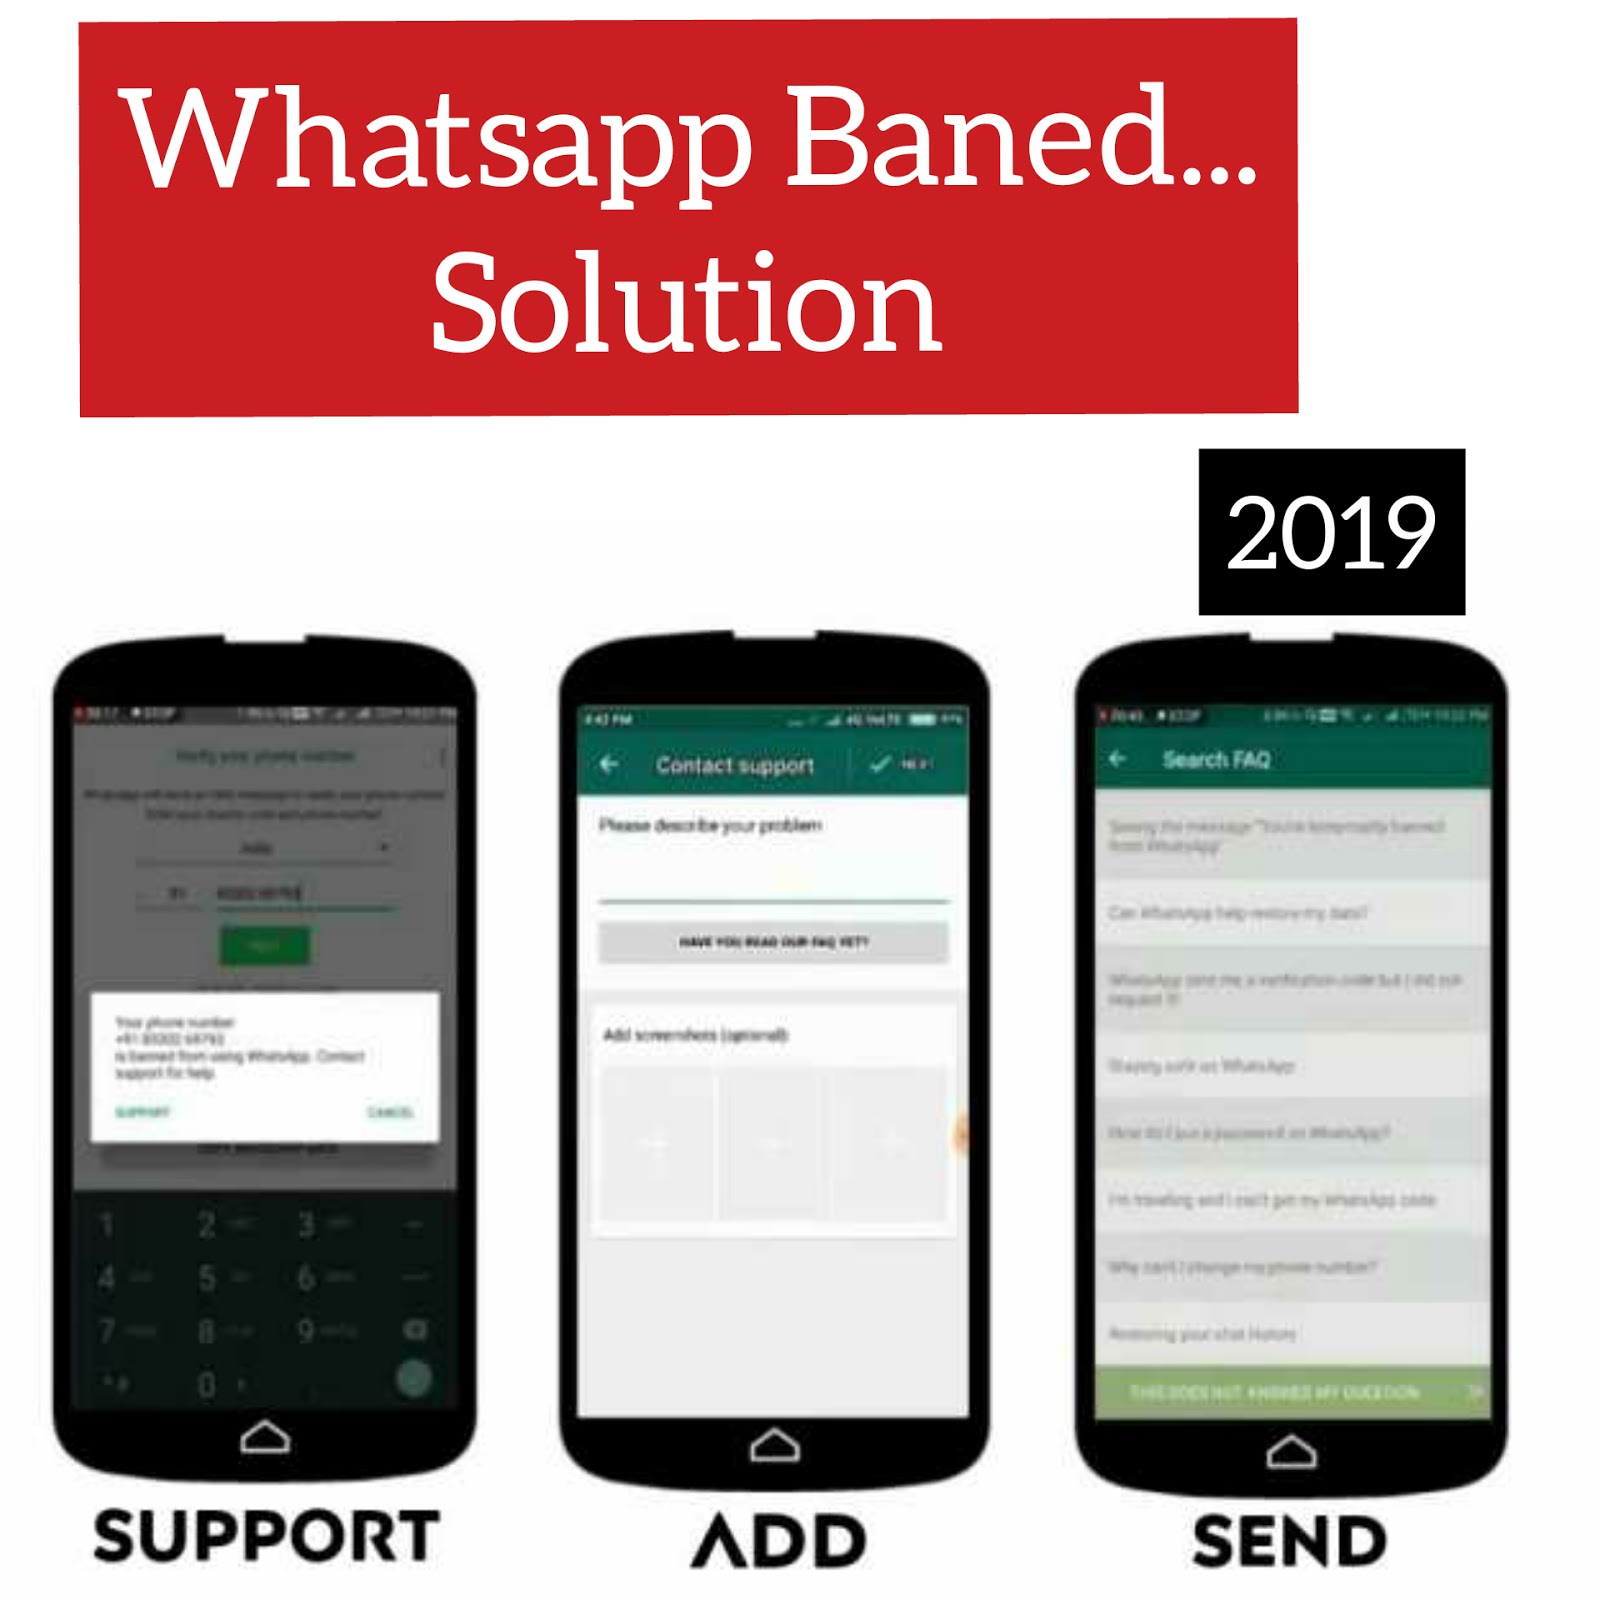 How to unban any whatsapp number 2019? - Touch 2 Gain